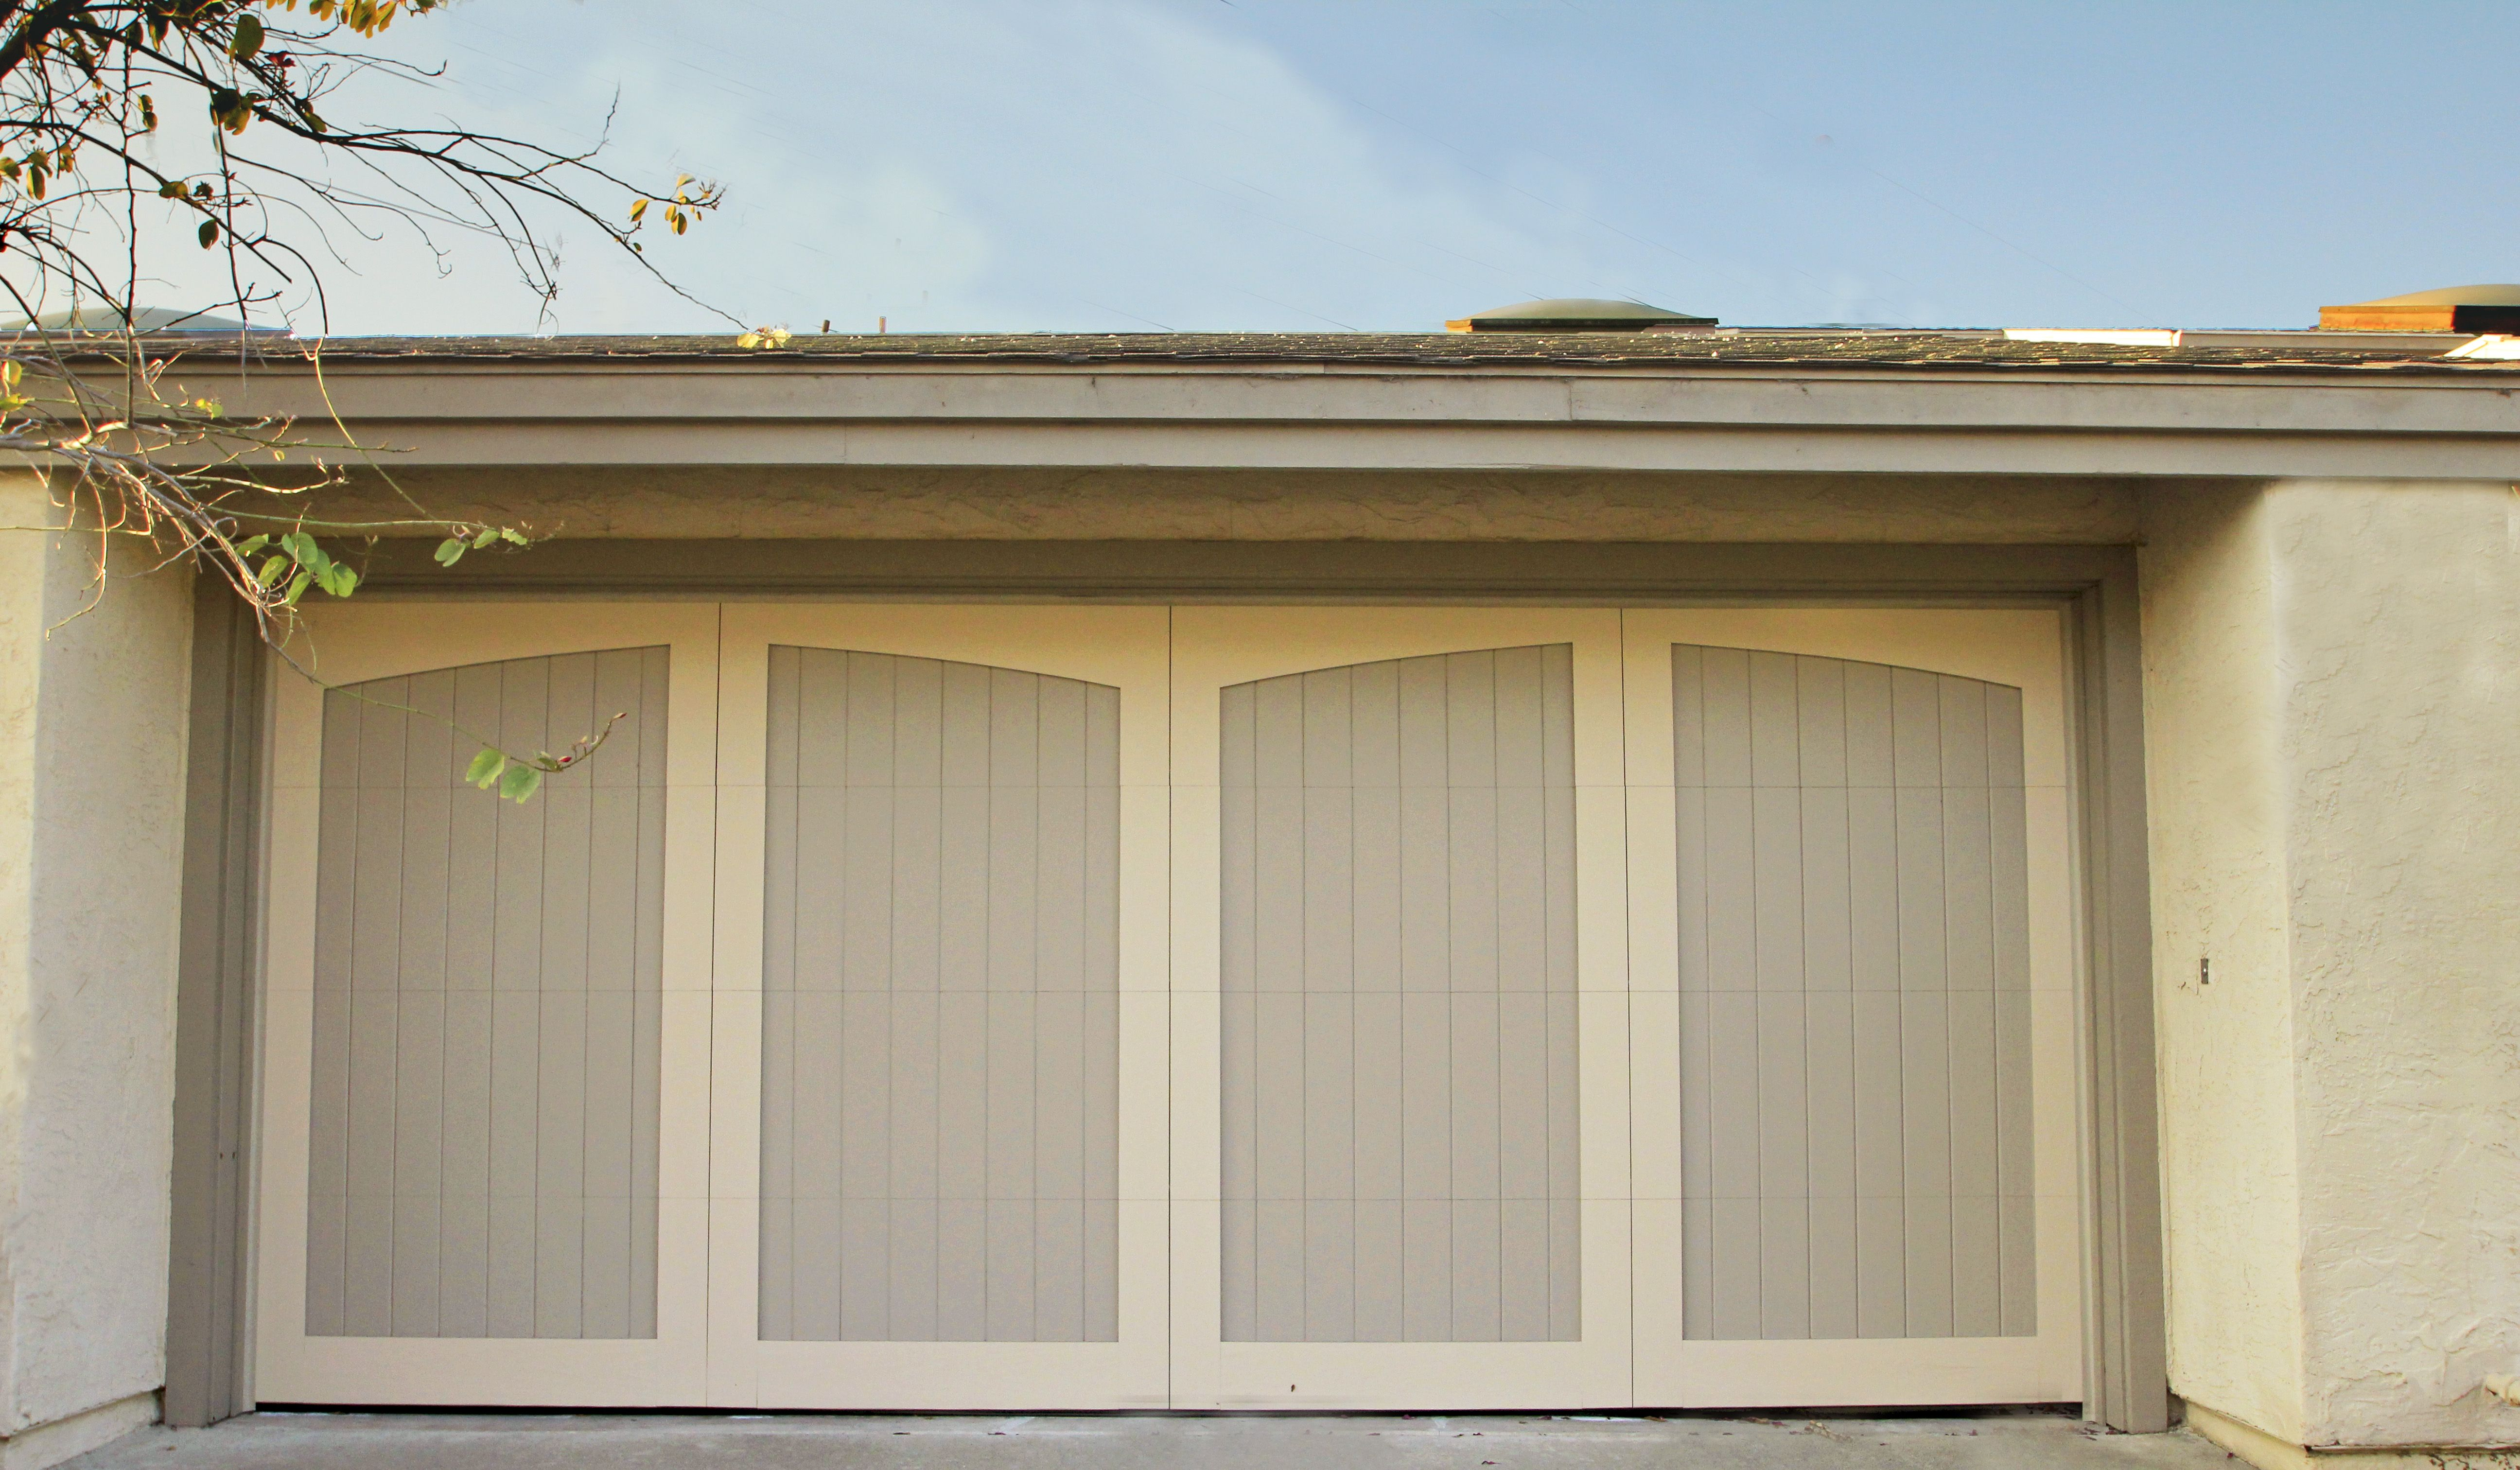 Bon Painted Wood Garage Door With Slightly Arched Top Panels.